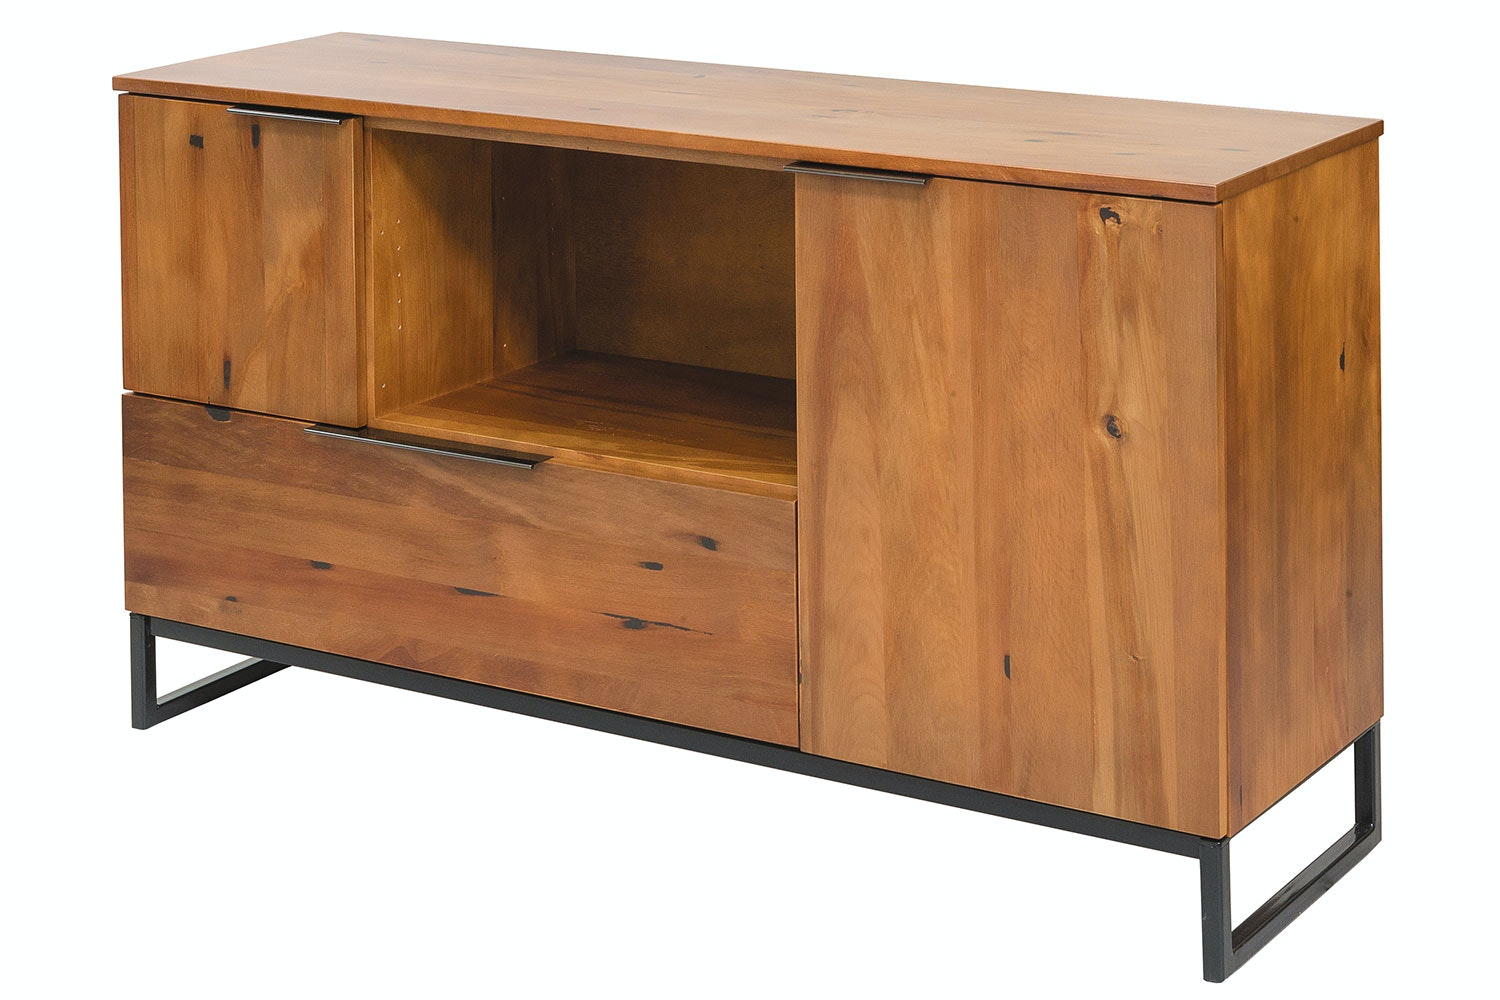 Matai Bay 1500 mm Buffet by Sorenson Furniture